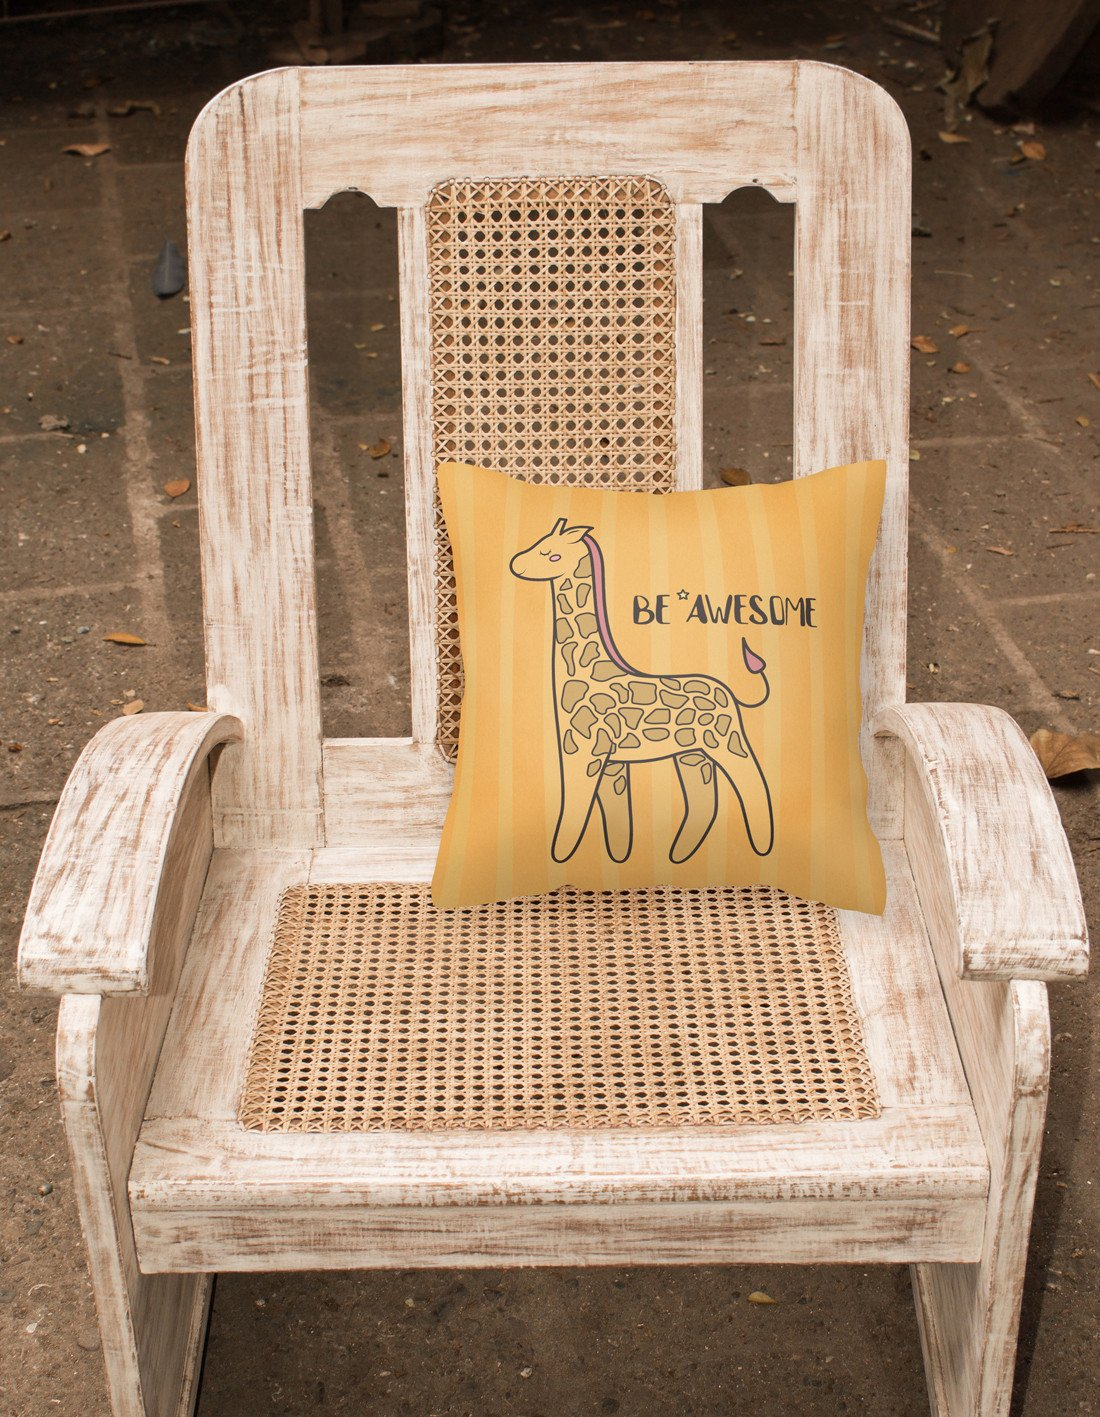 Nursery Be Awesome Griaffe Fabric Decorative Pillow BB7474PW1818 by Caroline's Treasures